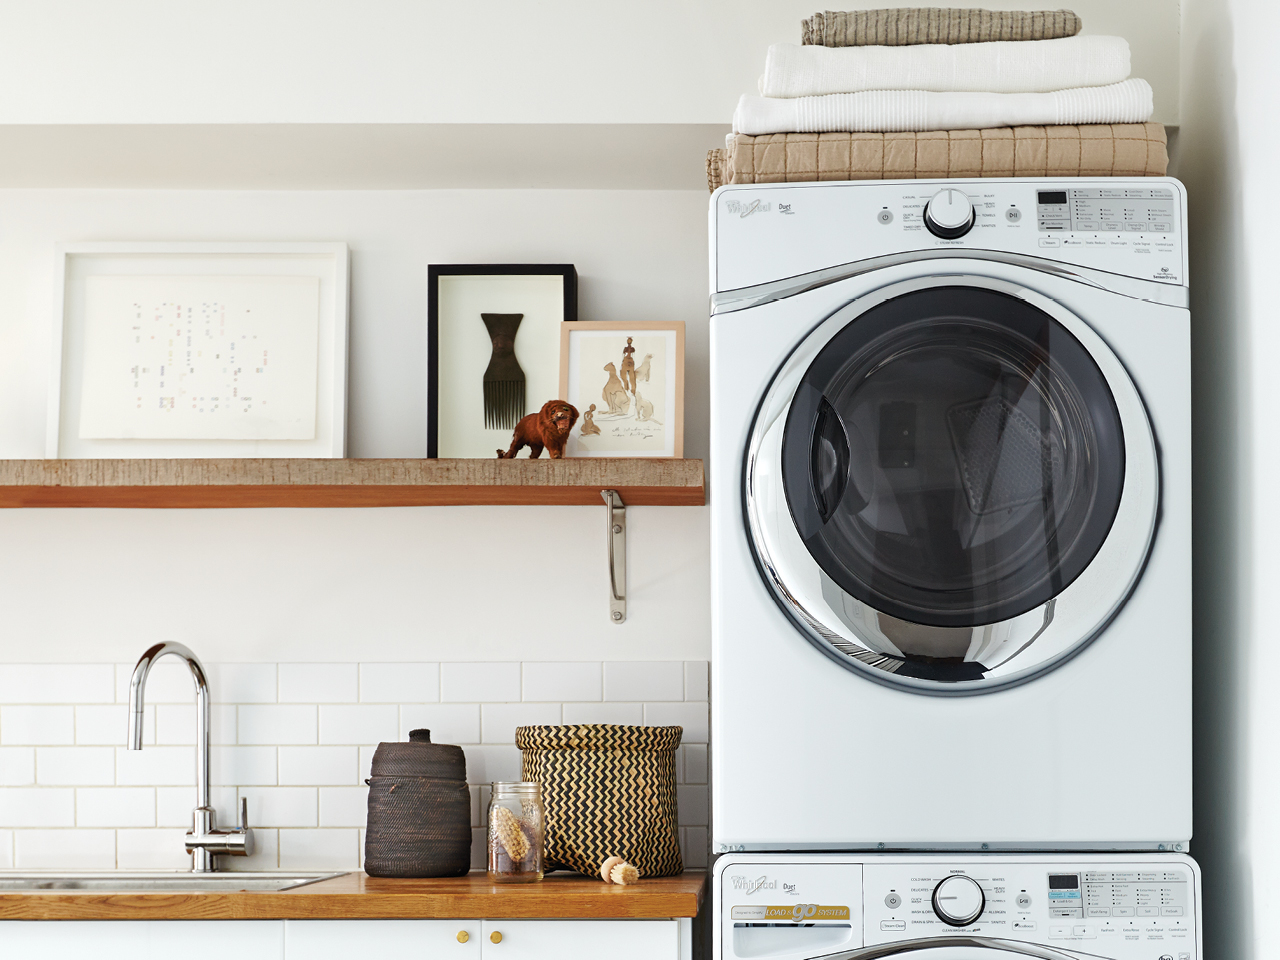 How To Make Your Clothes Smell Good In The Dryer 10 genius laundry hacks that actually work | chatelaine